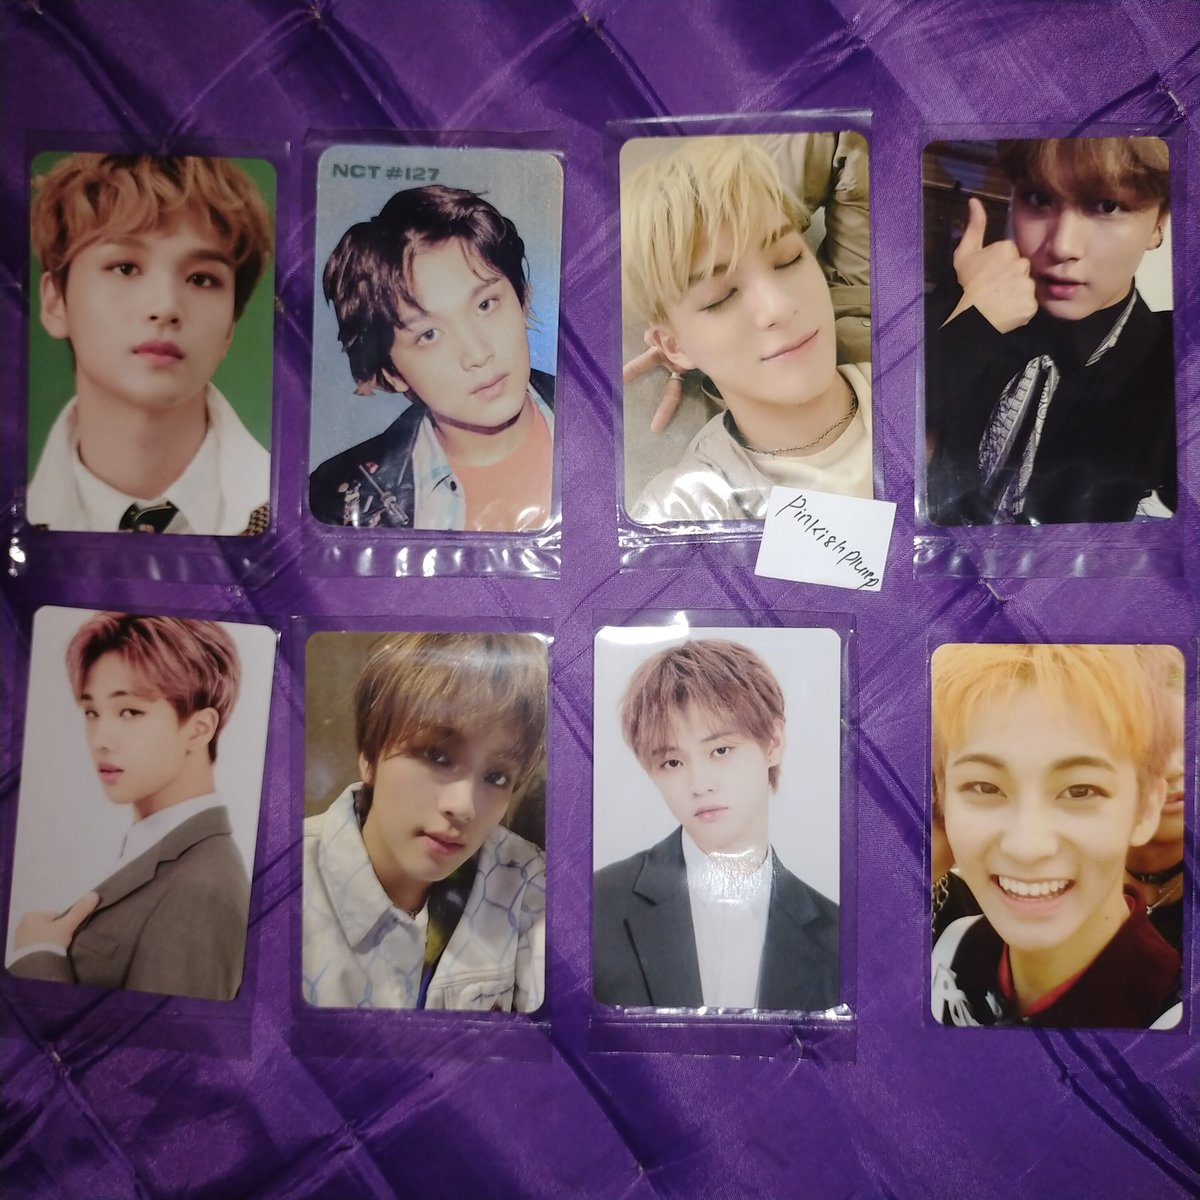 Wts ready indo🇲🇨  -Haechan sg 2020 withdrama -Haechan neo zone standee -Jeno we boom boom ver -Haechan irregular -Jisung sg 2020 withdrama -Haechan reload ridin ver -Chenle sg 2020 withdrama -Mark fire truck  Price by dm✨ Tag nct photocard pc ina wtt wtb album https://t.co/SCG9l0w7I4